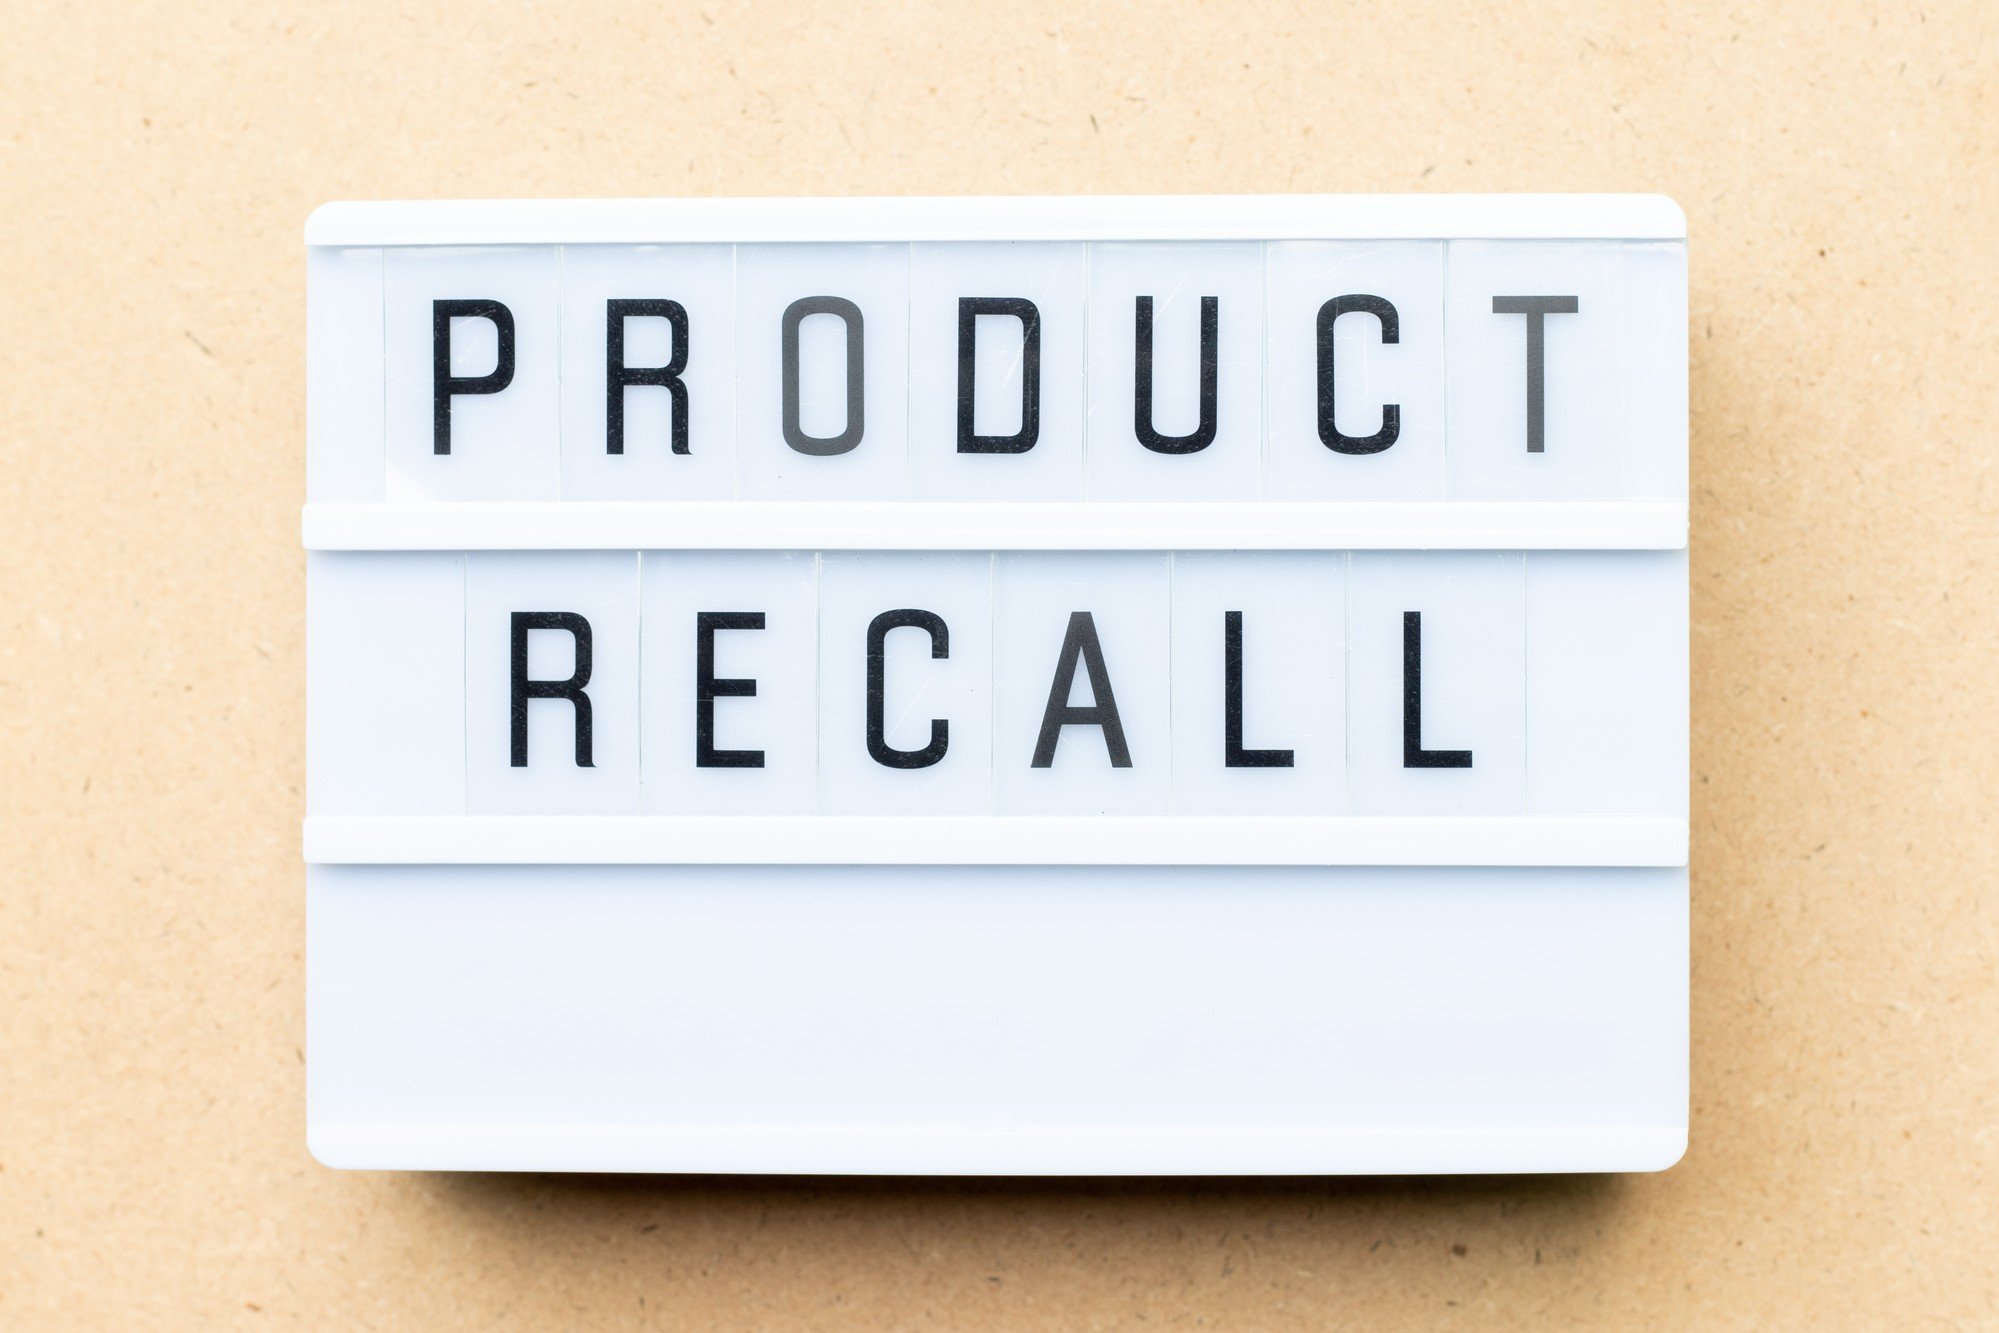 Product recall sign regarding the hazardous consumer products recalled by Health Canada